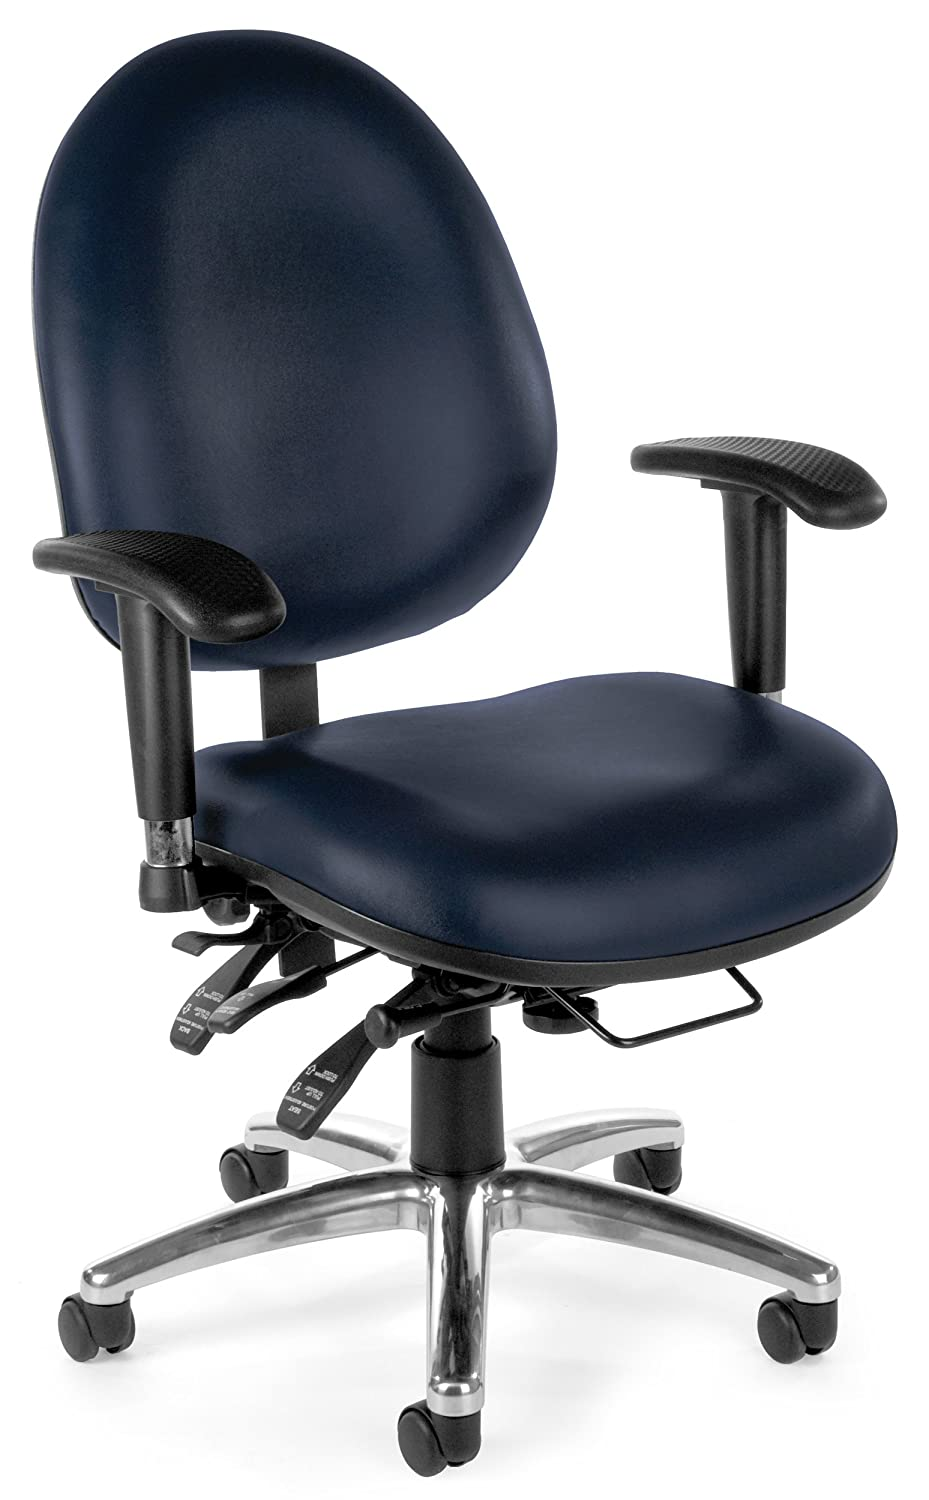 Office Chair With Adjustable Arms Amazoncom Ofm 24 7 Vinyl Chair Black Kitchen Dining